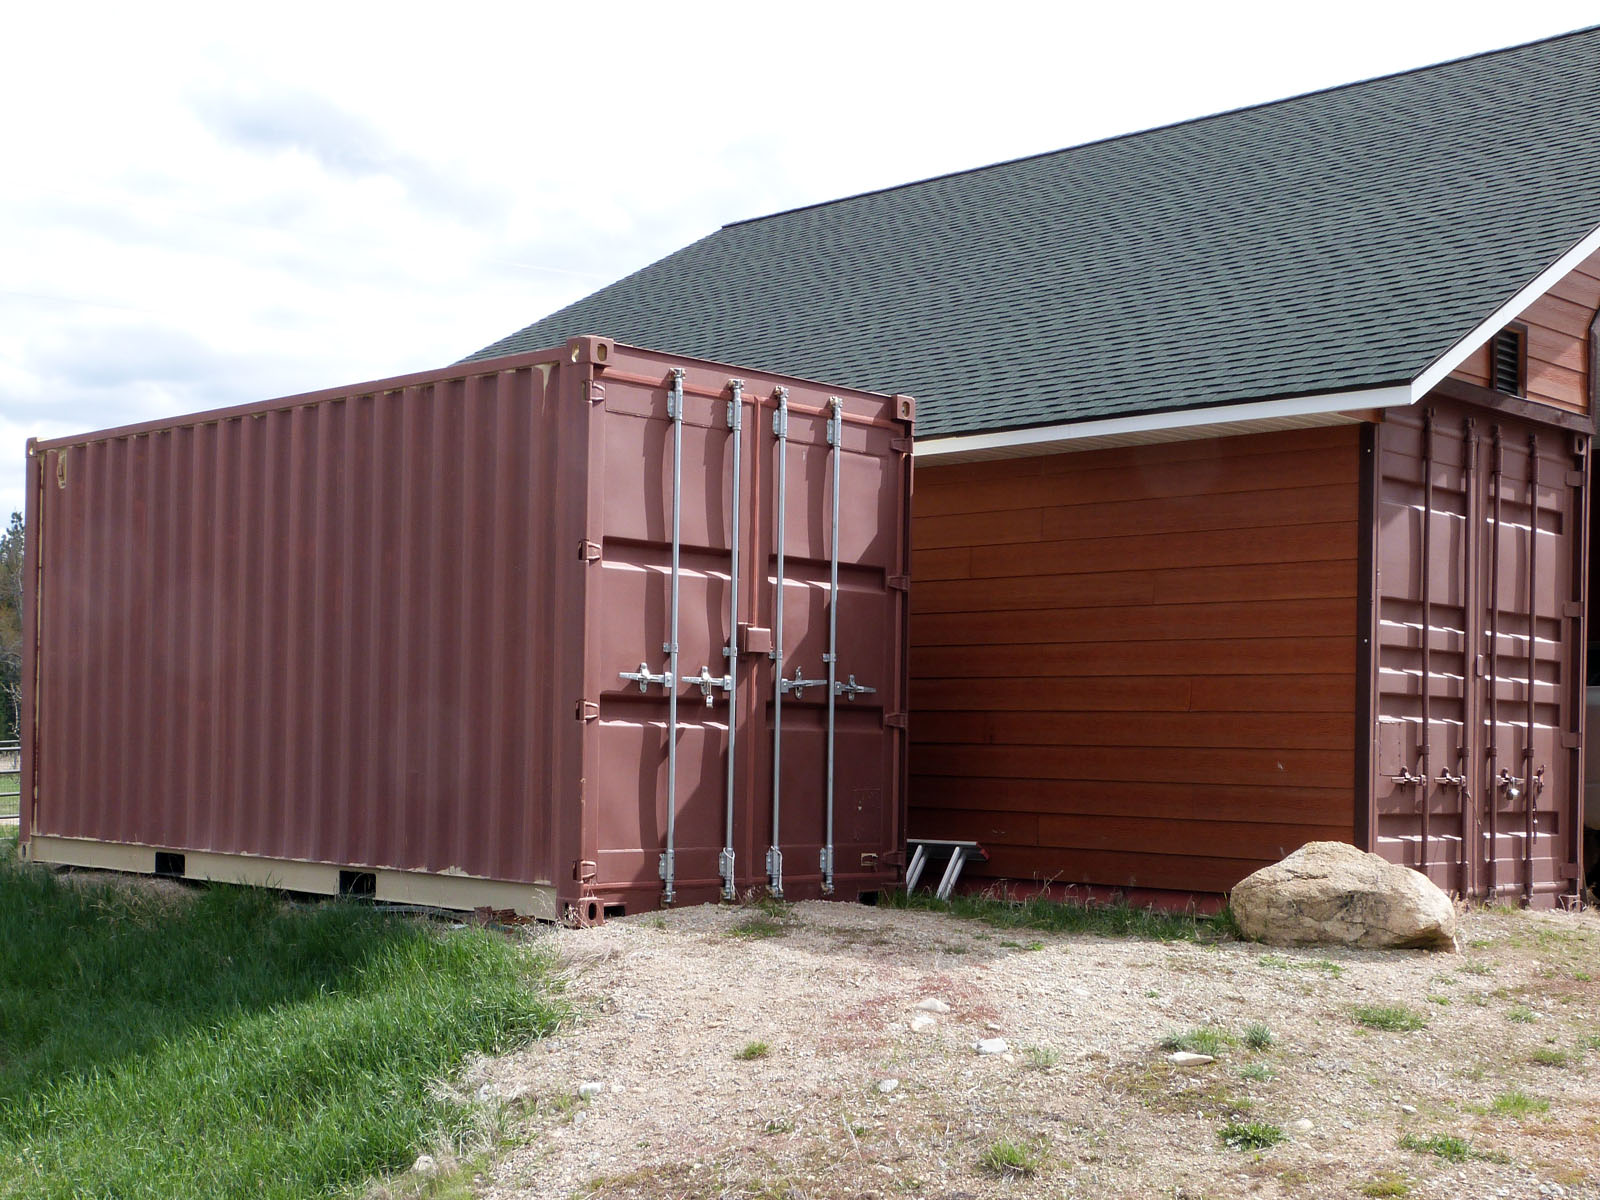 Isbu Shipping Container Barn Raising Anyone The Life And Times Of A Quot Renaissance Ronin Quot